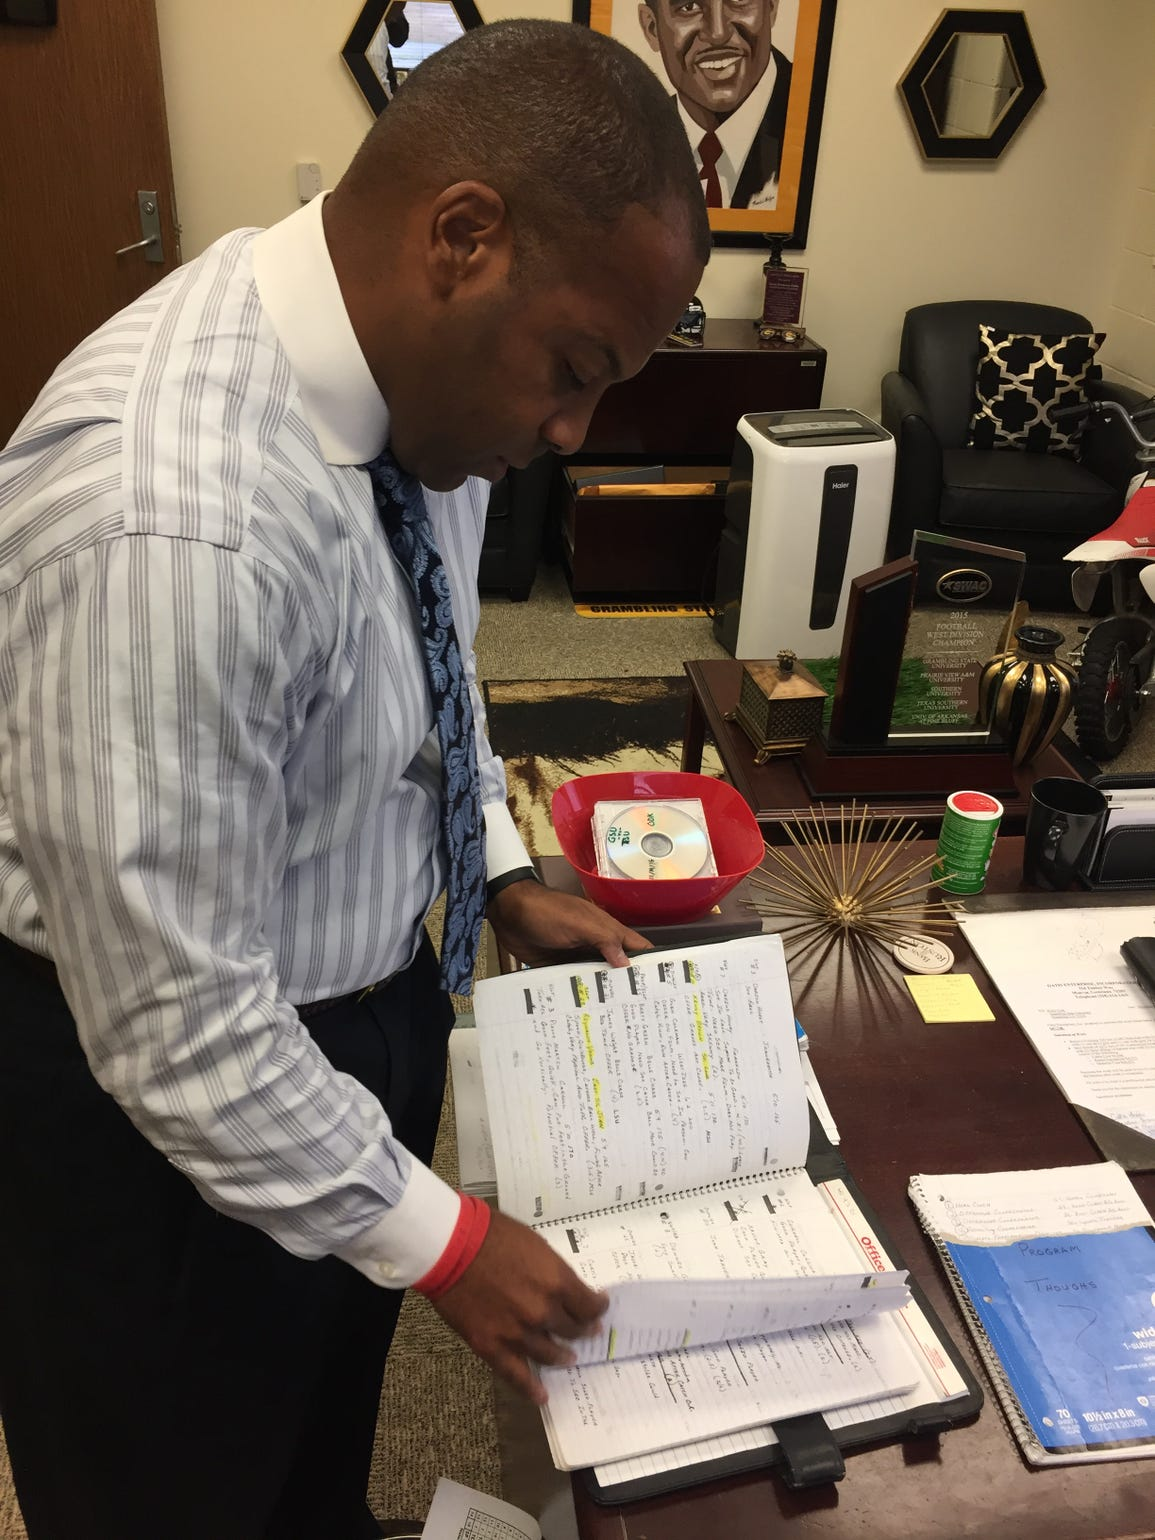 Grambling coach Broderick Fobbs combs through his old